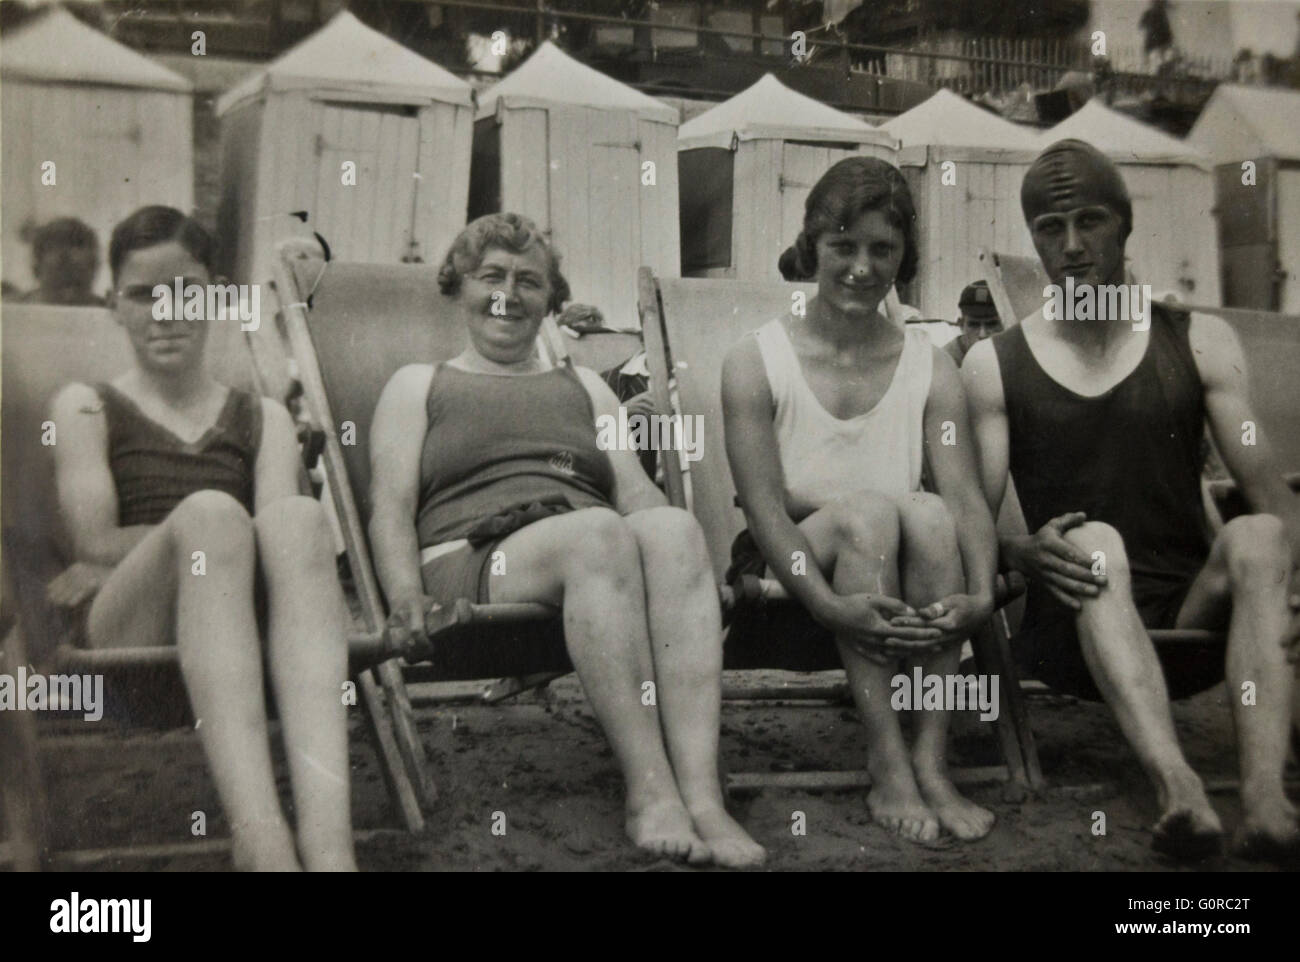 10a5a44168b Historical Black and White Photograph People in Swimming Costumes sitting  on the Beach - Stock Image